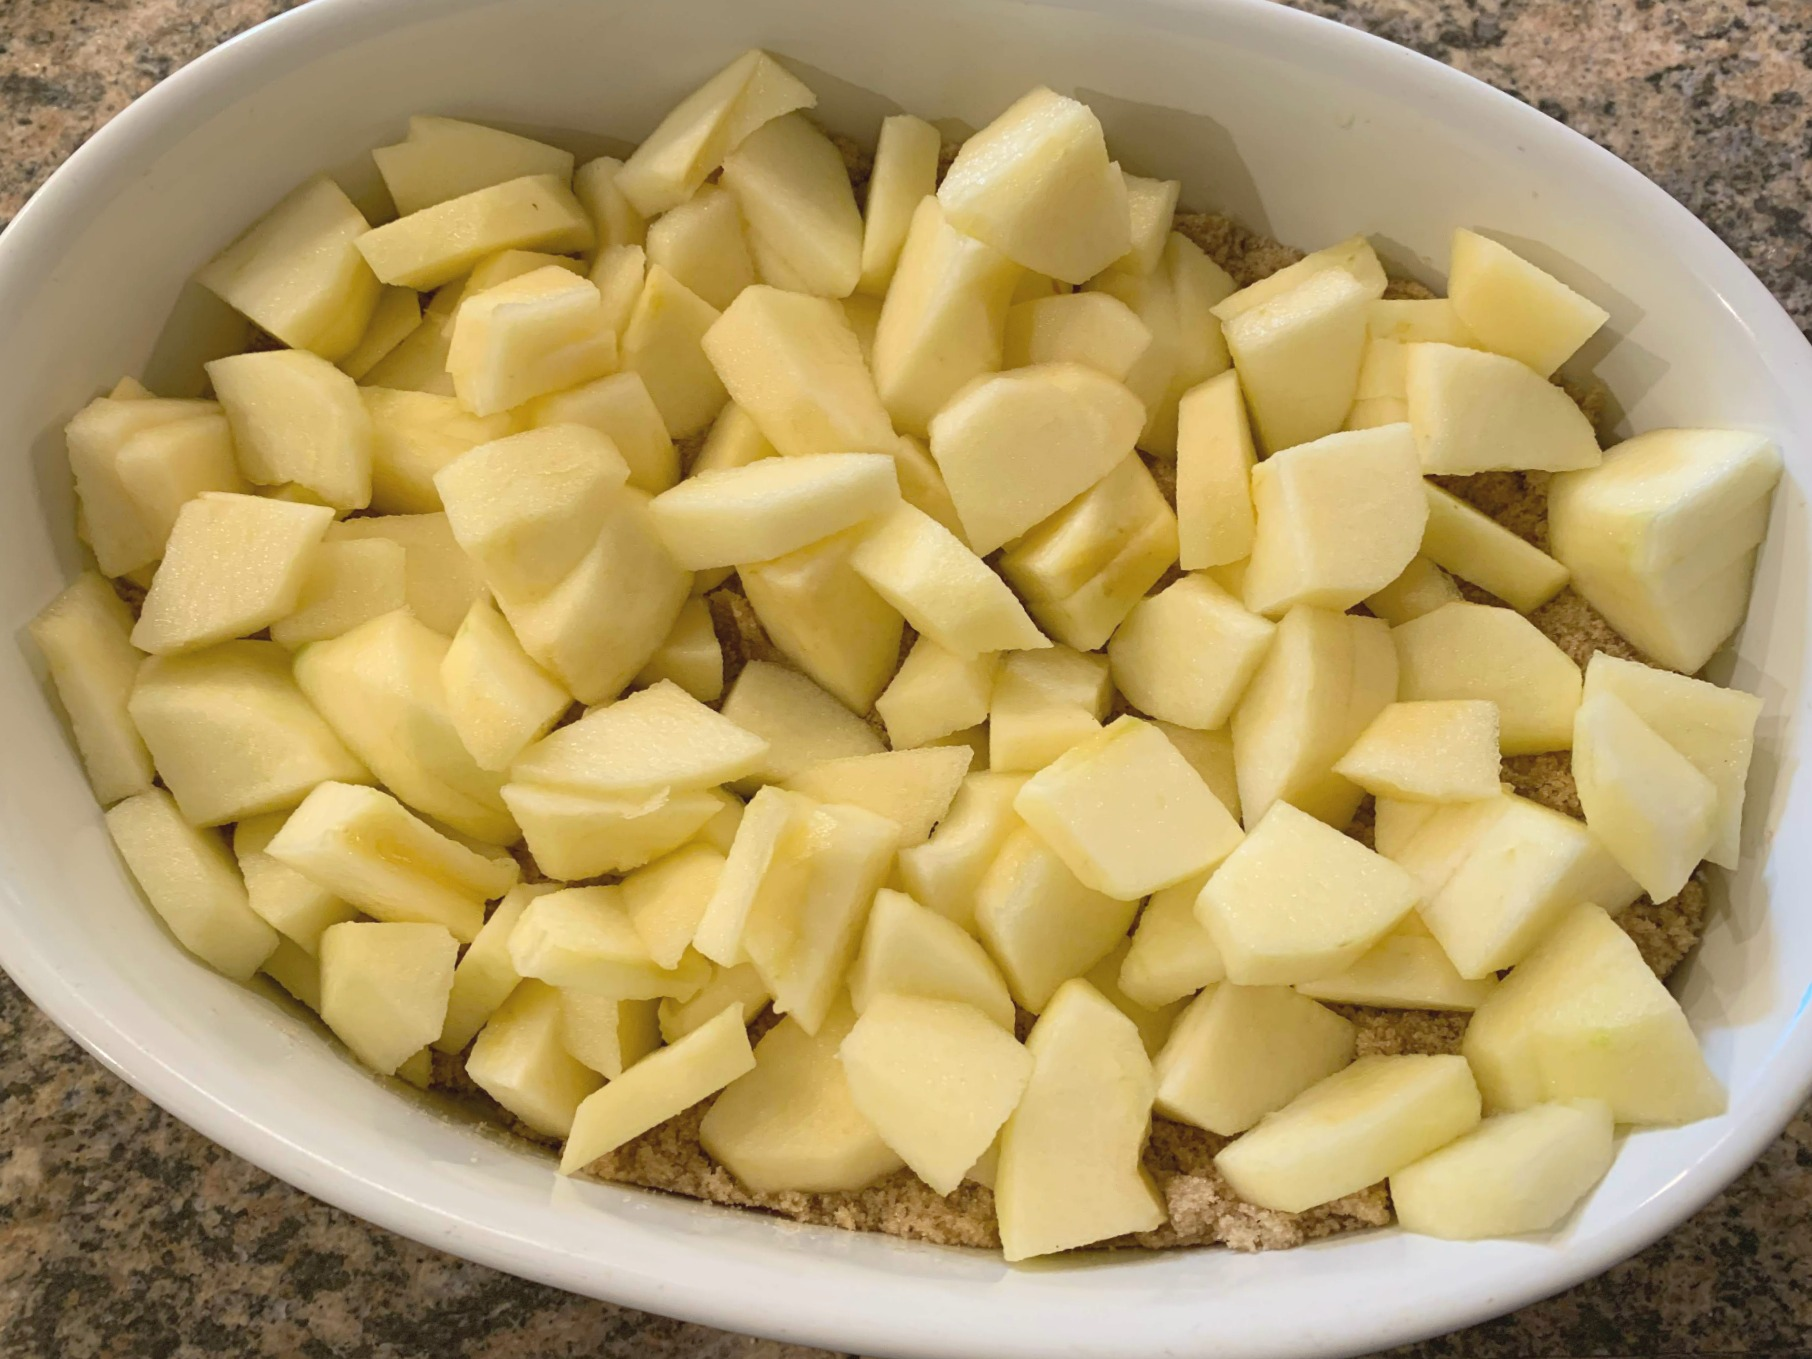 a white oval dish with chopped apples